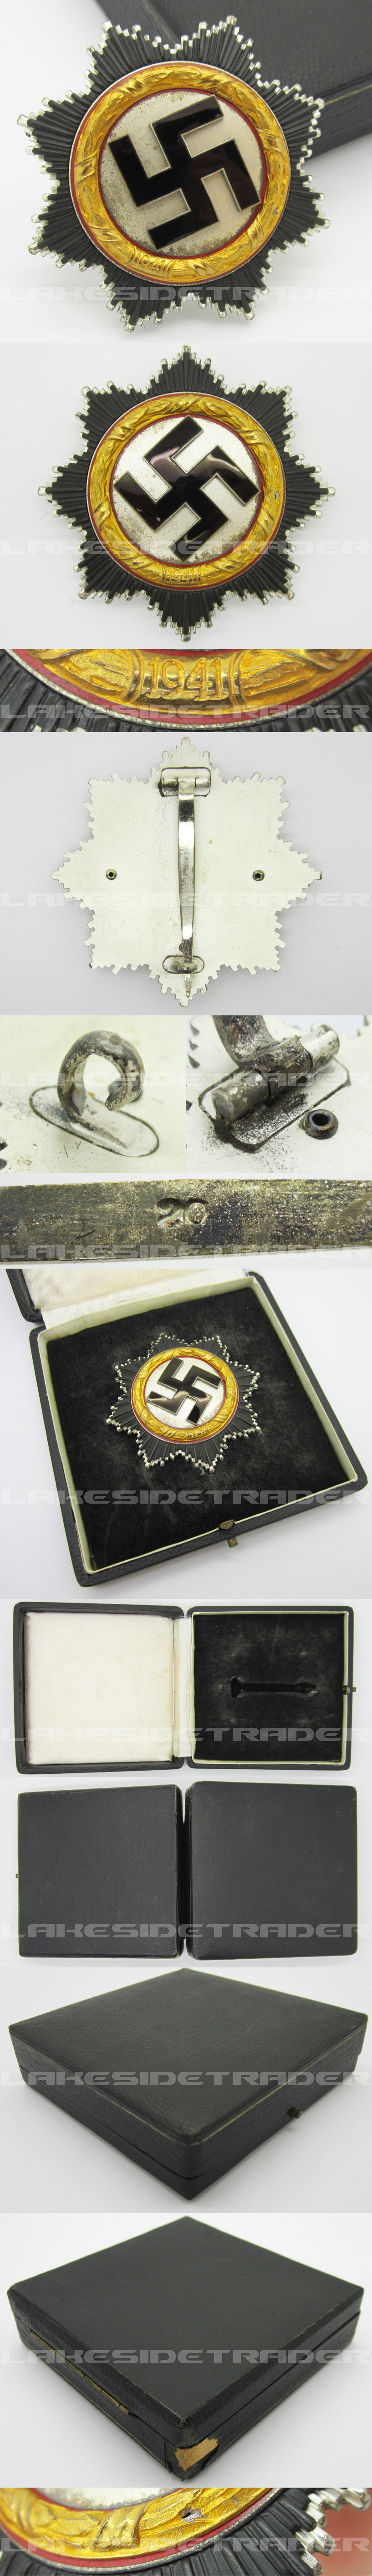 Cased Gold German Cross by Zimmermann